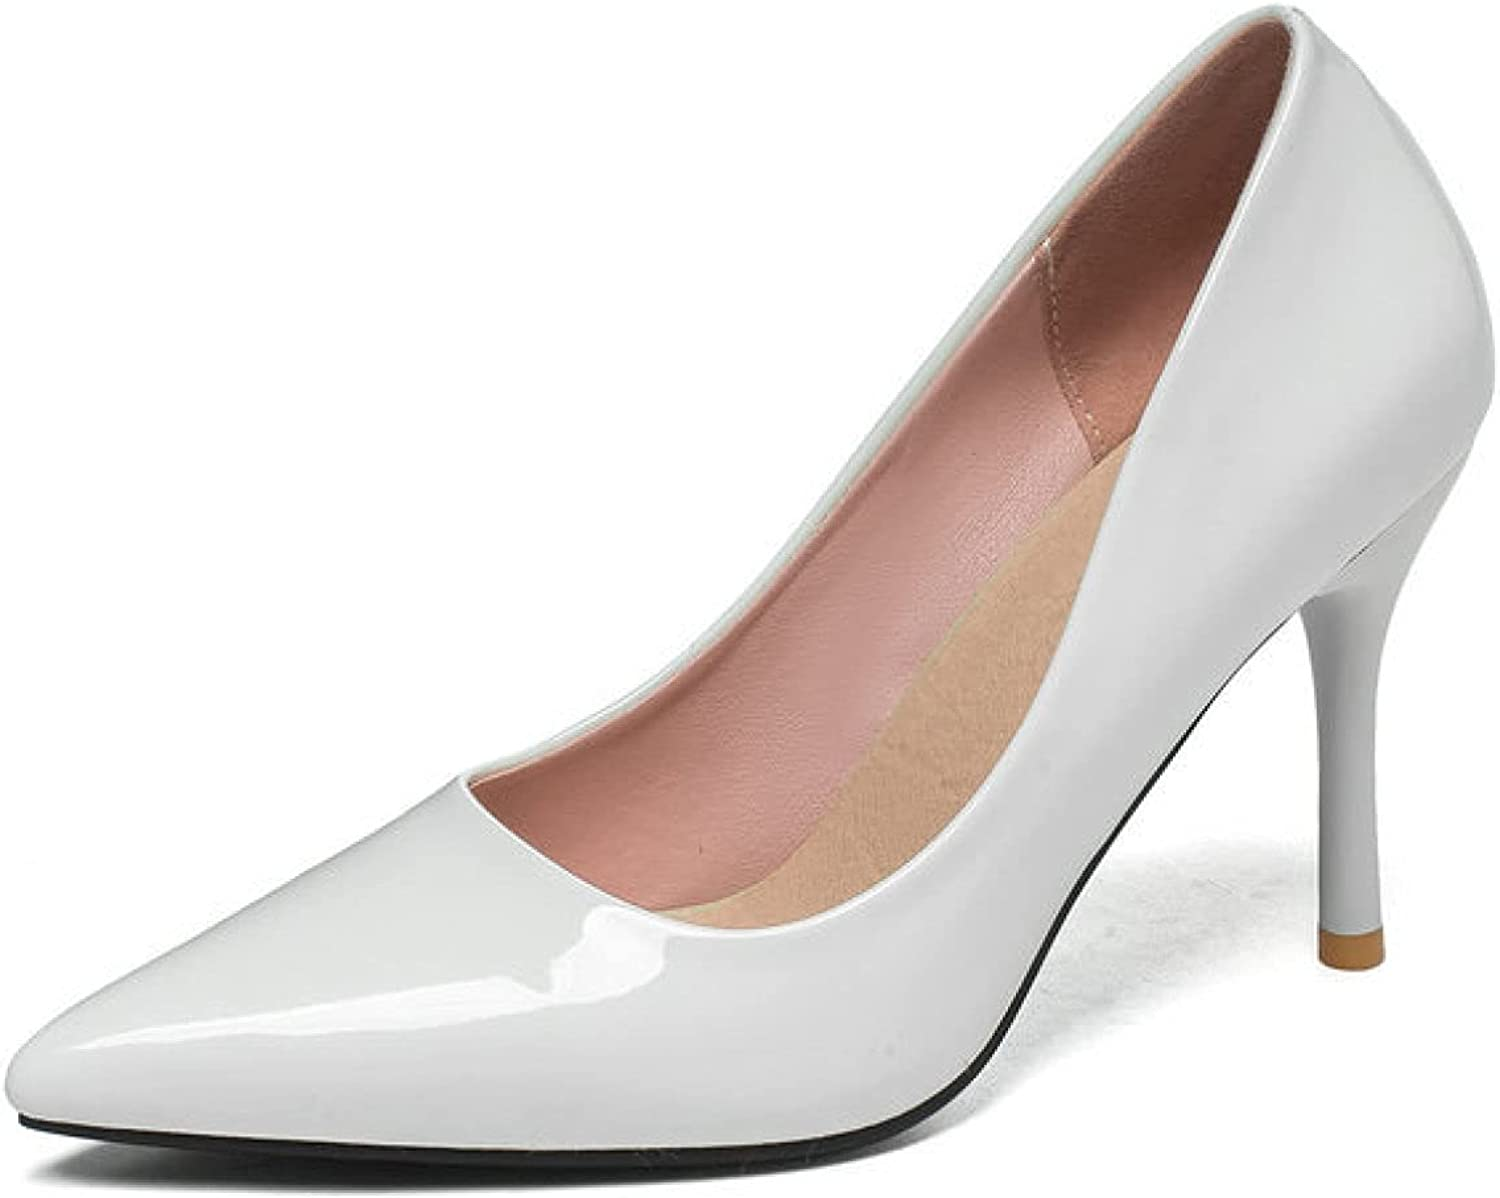 Max 65% OFF CYBLING Woman Comfortable Mary Jane security Pump Shoes Heel Formal High